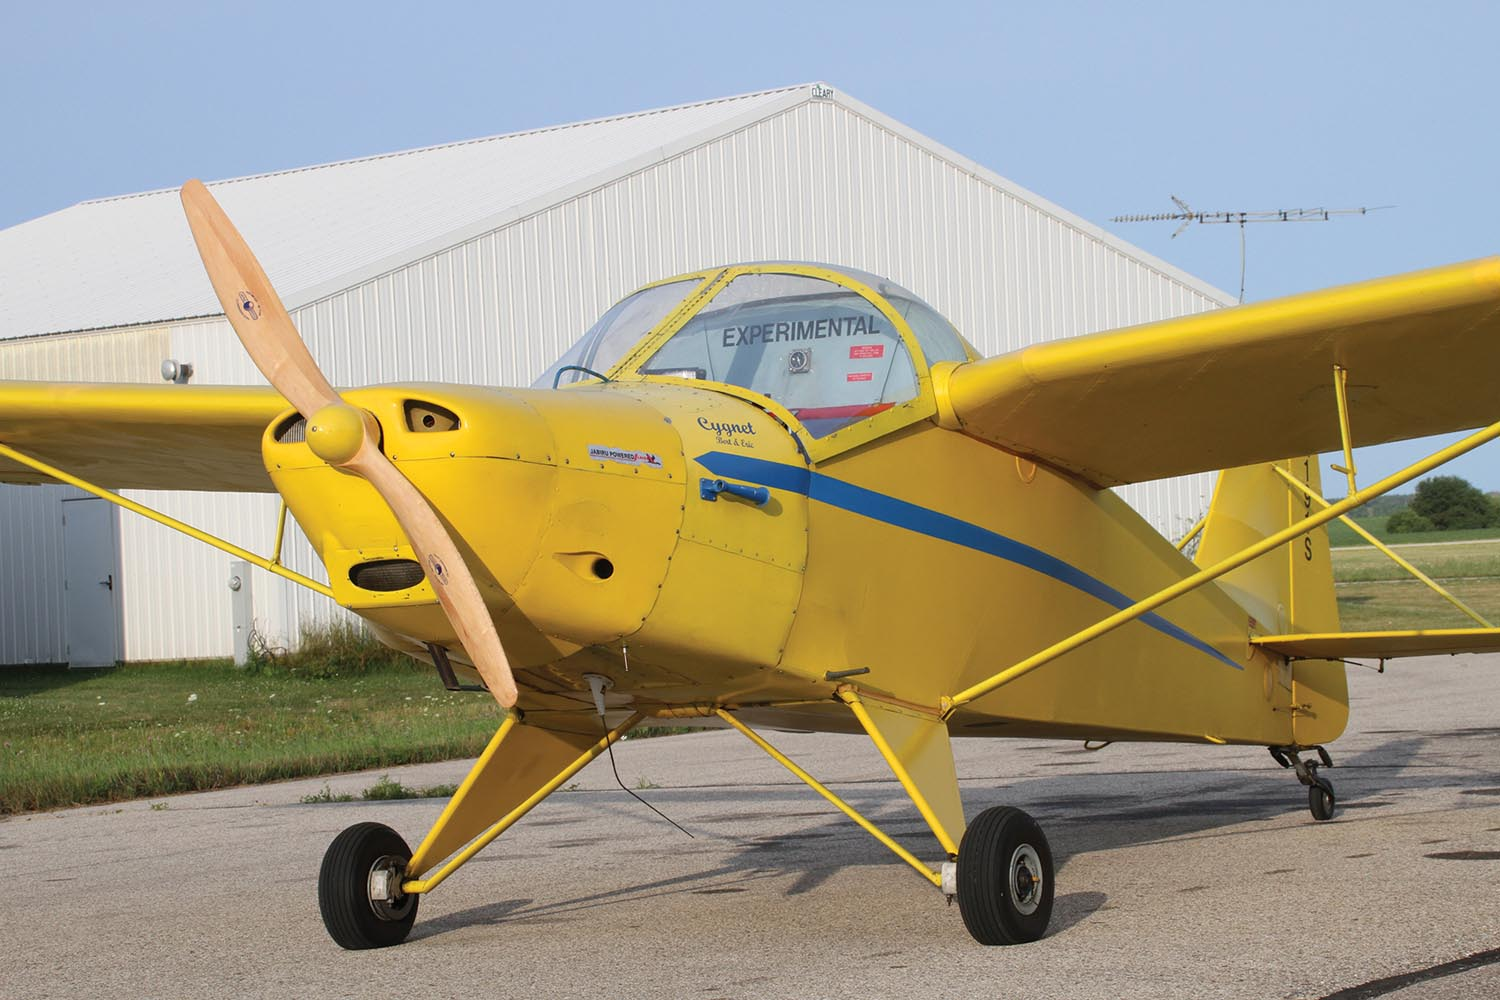 The Cygnet is a good example of an older design that doesn't follow modern rules—the sight picture is unique for a taildragger (you can see over the nose!), and the panel is old-school. Make notes and see what you like, and what you might change.